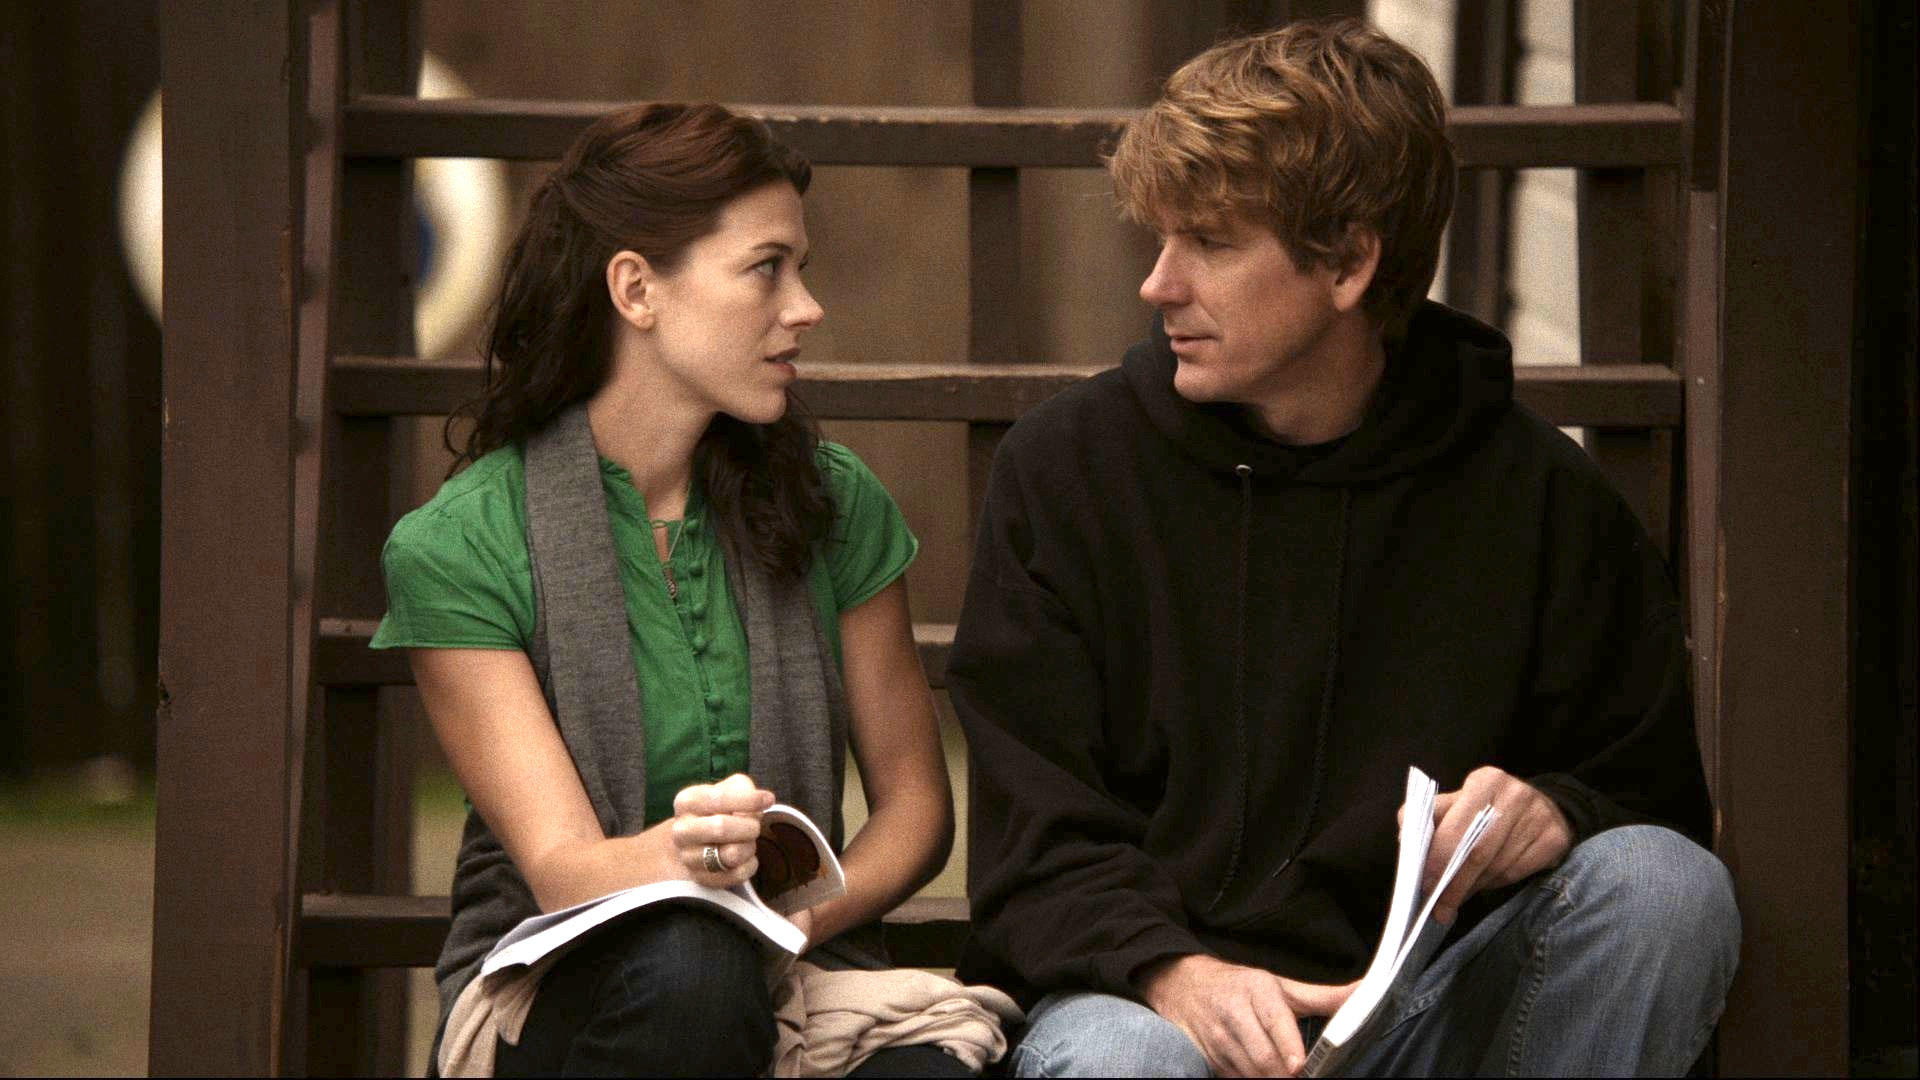 Elizabeth Roberts as Amber and Rik Swartzwelder as Clay in